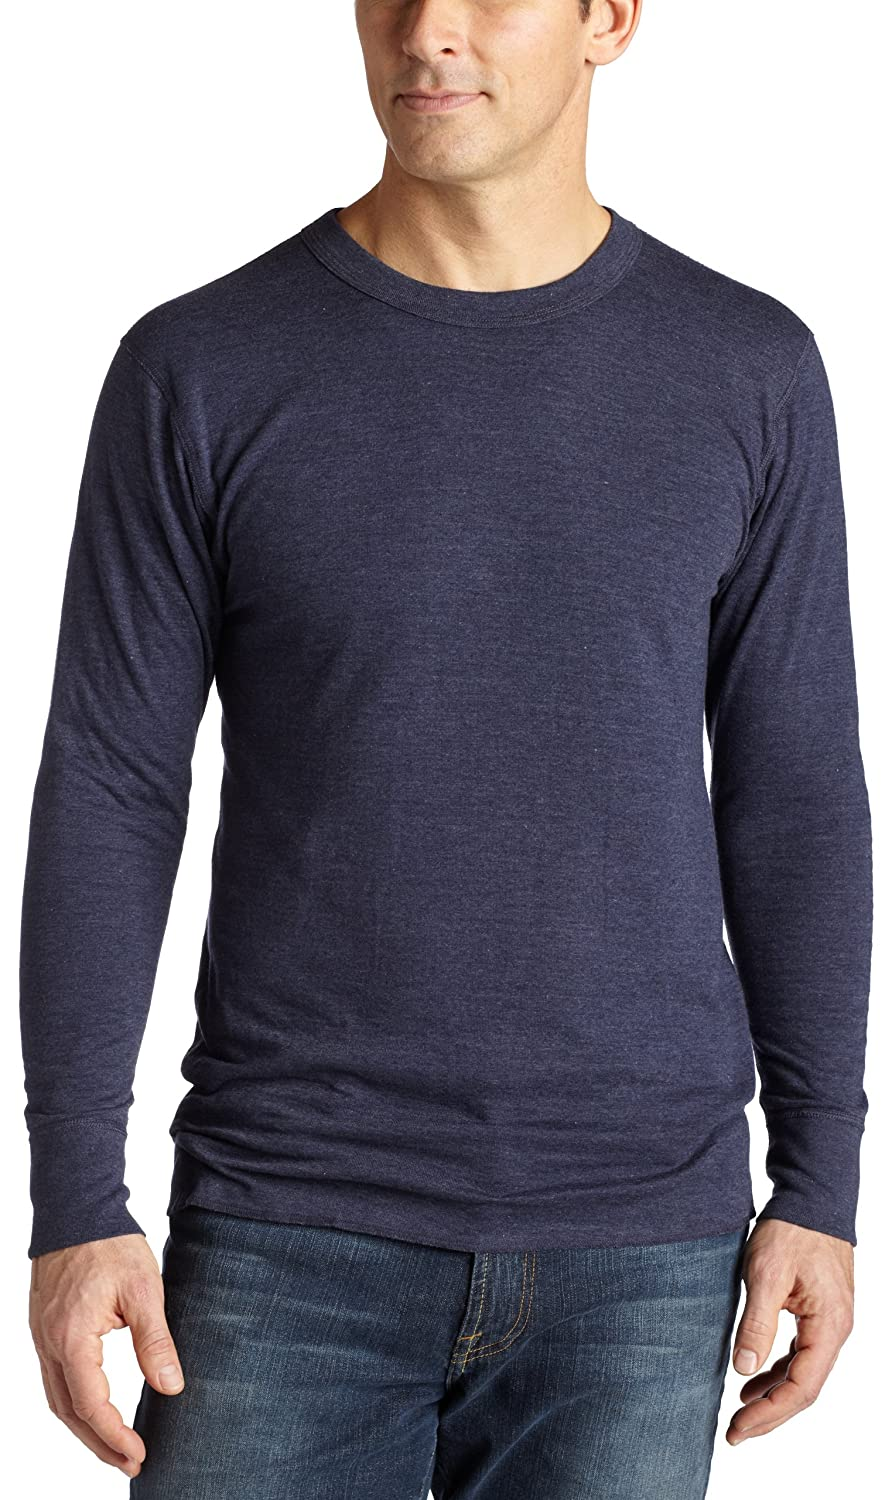 Duofold Men's Mid-Weight Thermal Crew-Neck Shirt 620A